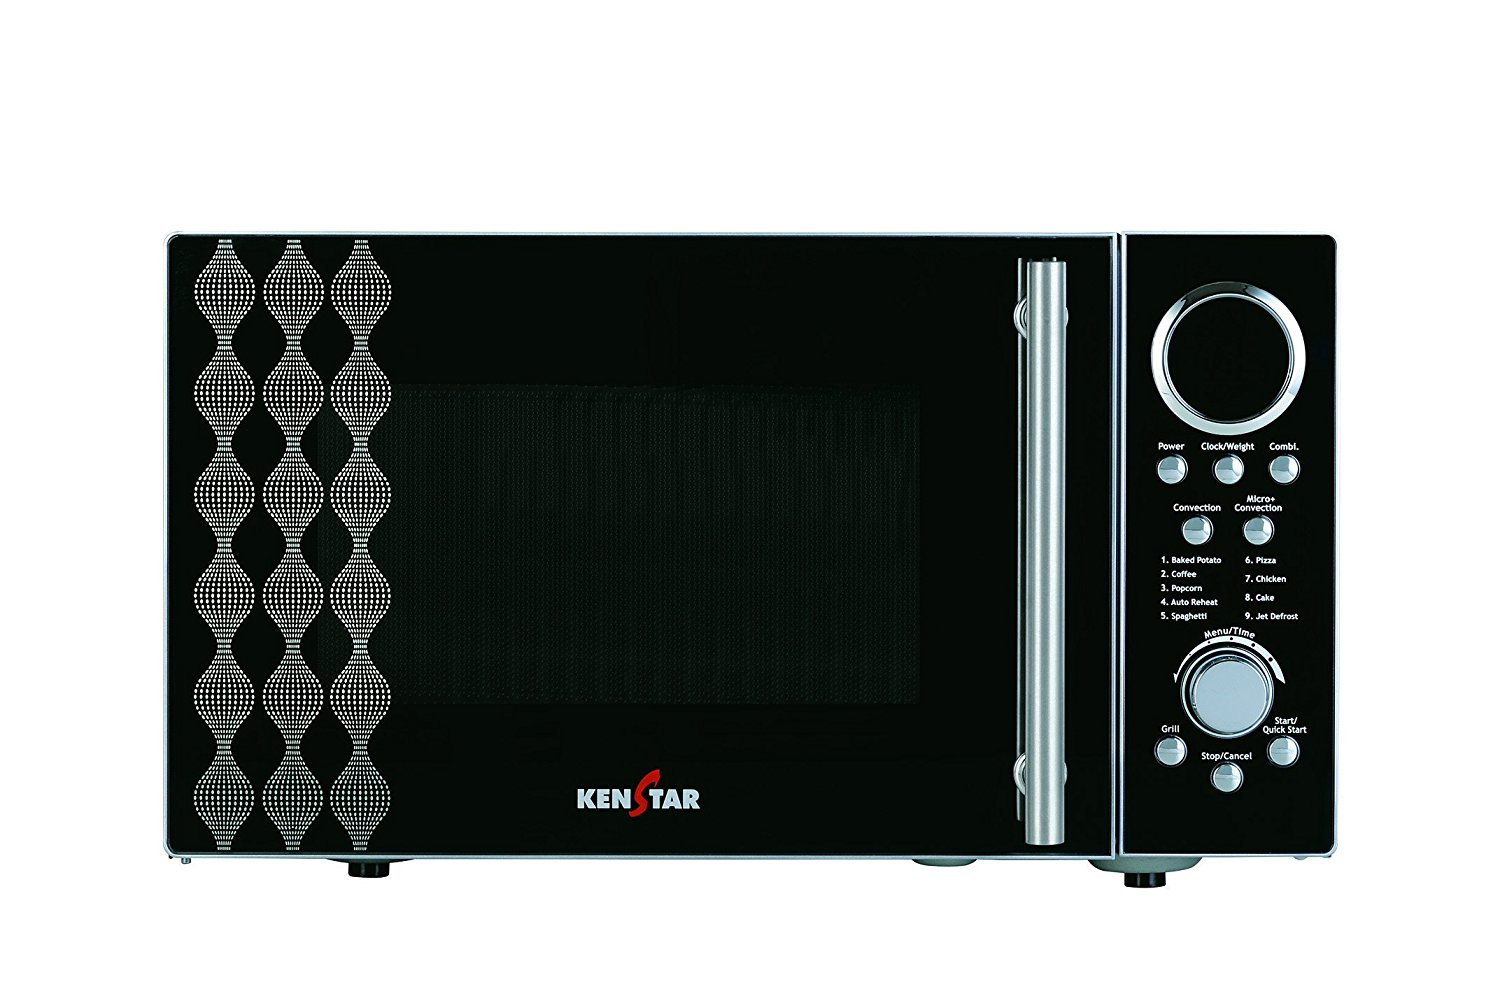 25 liters kenstar convection microwave oven silver finish